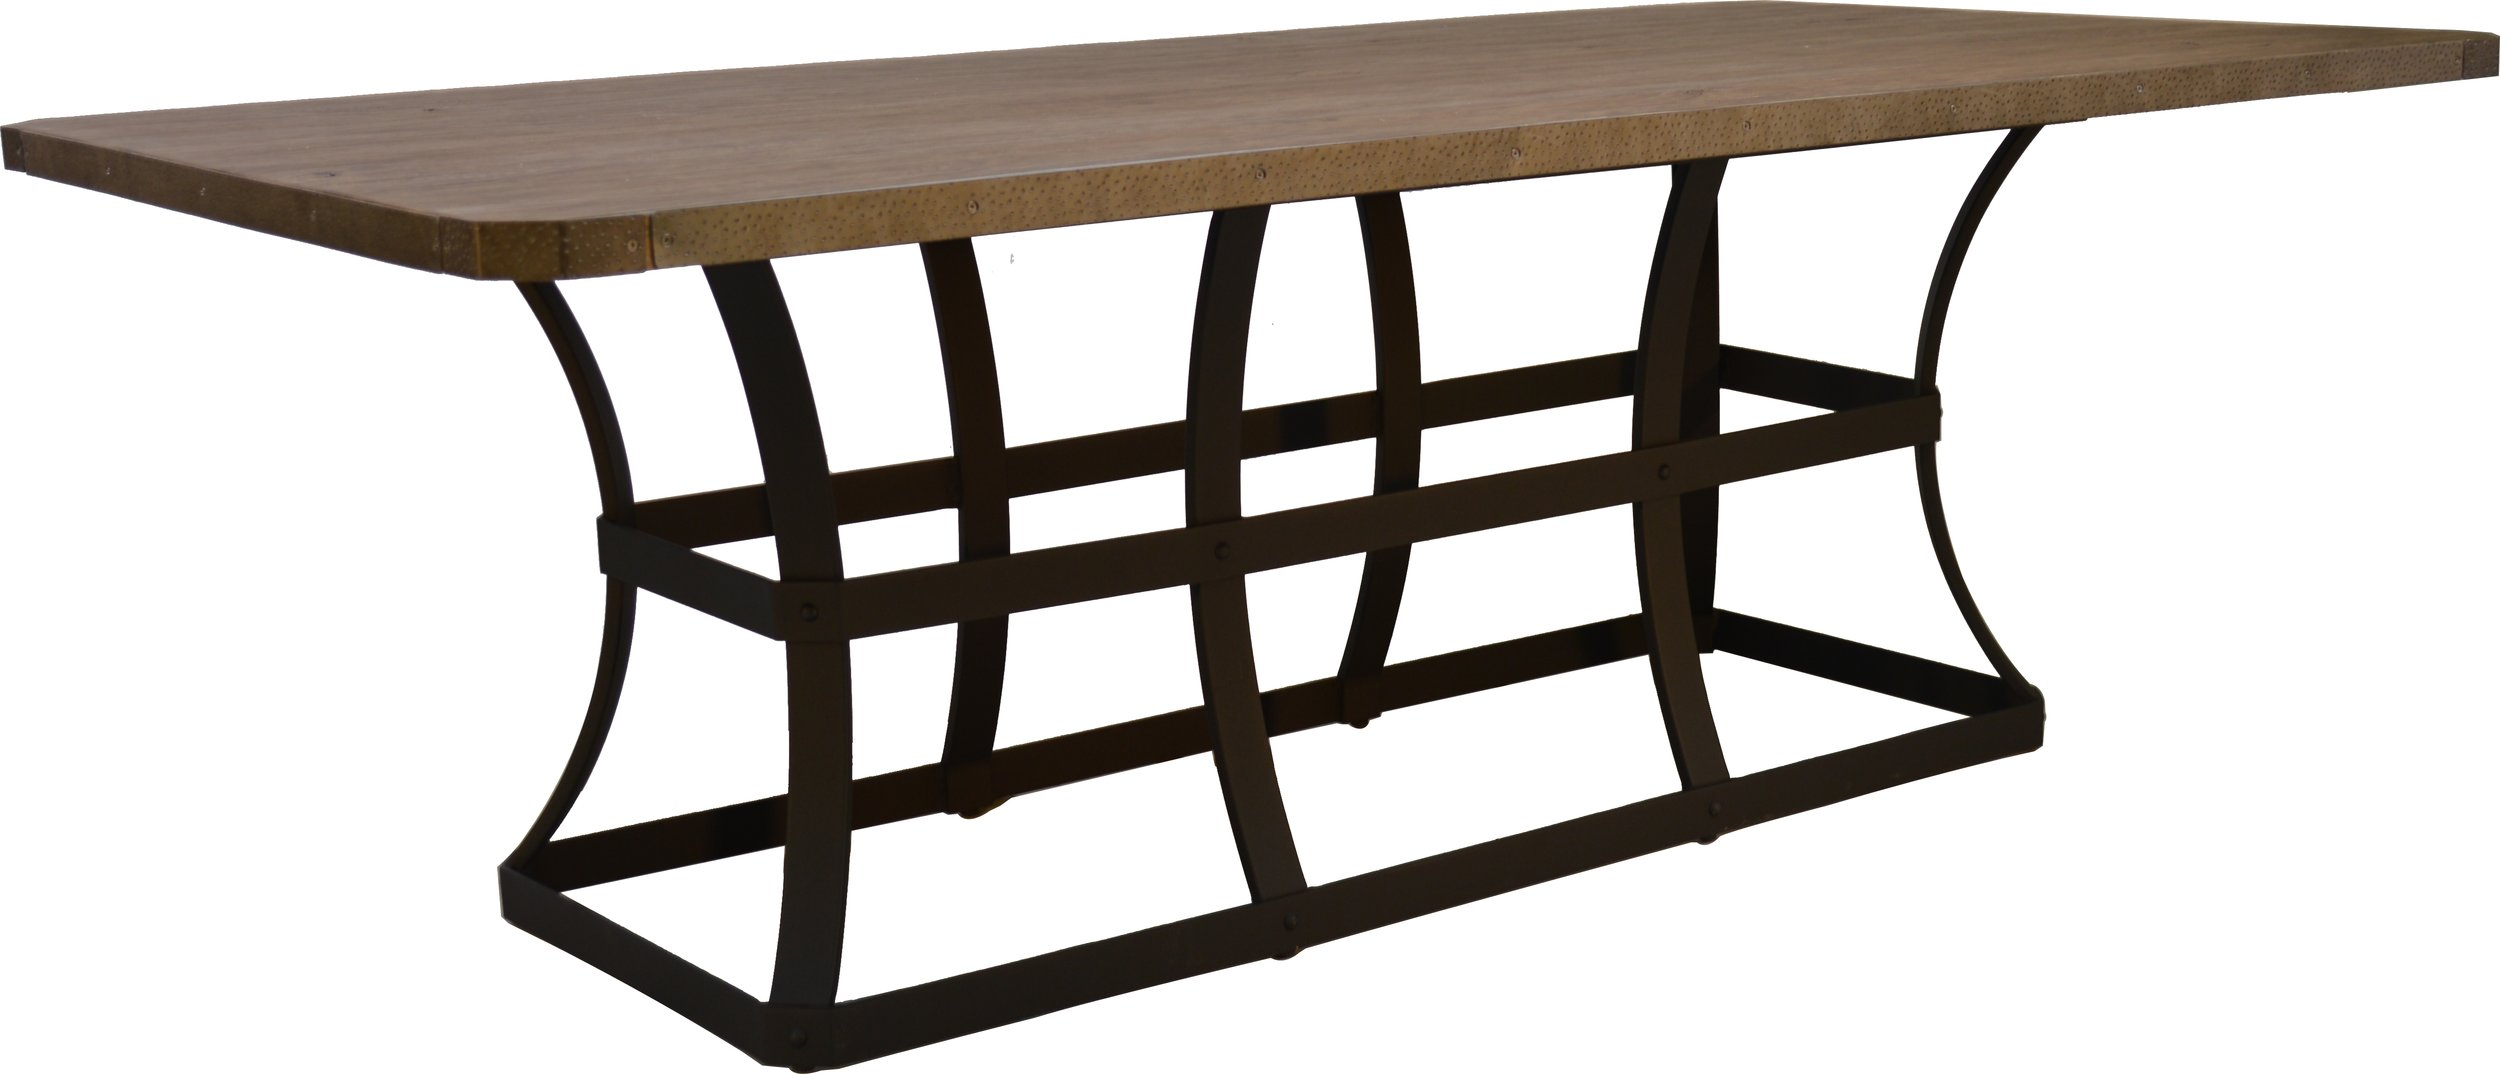 """PL-4484 44"""" x 84"""" Dining Table Base   23"""" x 61"""" x 28""""  Top - EA-4484 Erie 44"""" 84"""" Rect. Top Reclaimed Barnwood"""